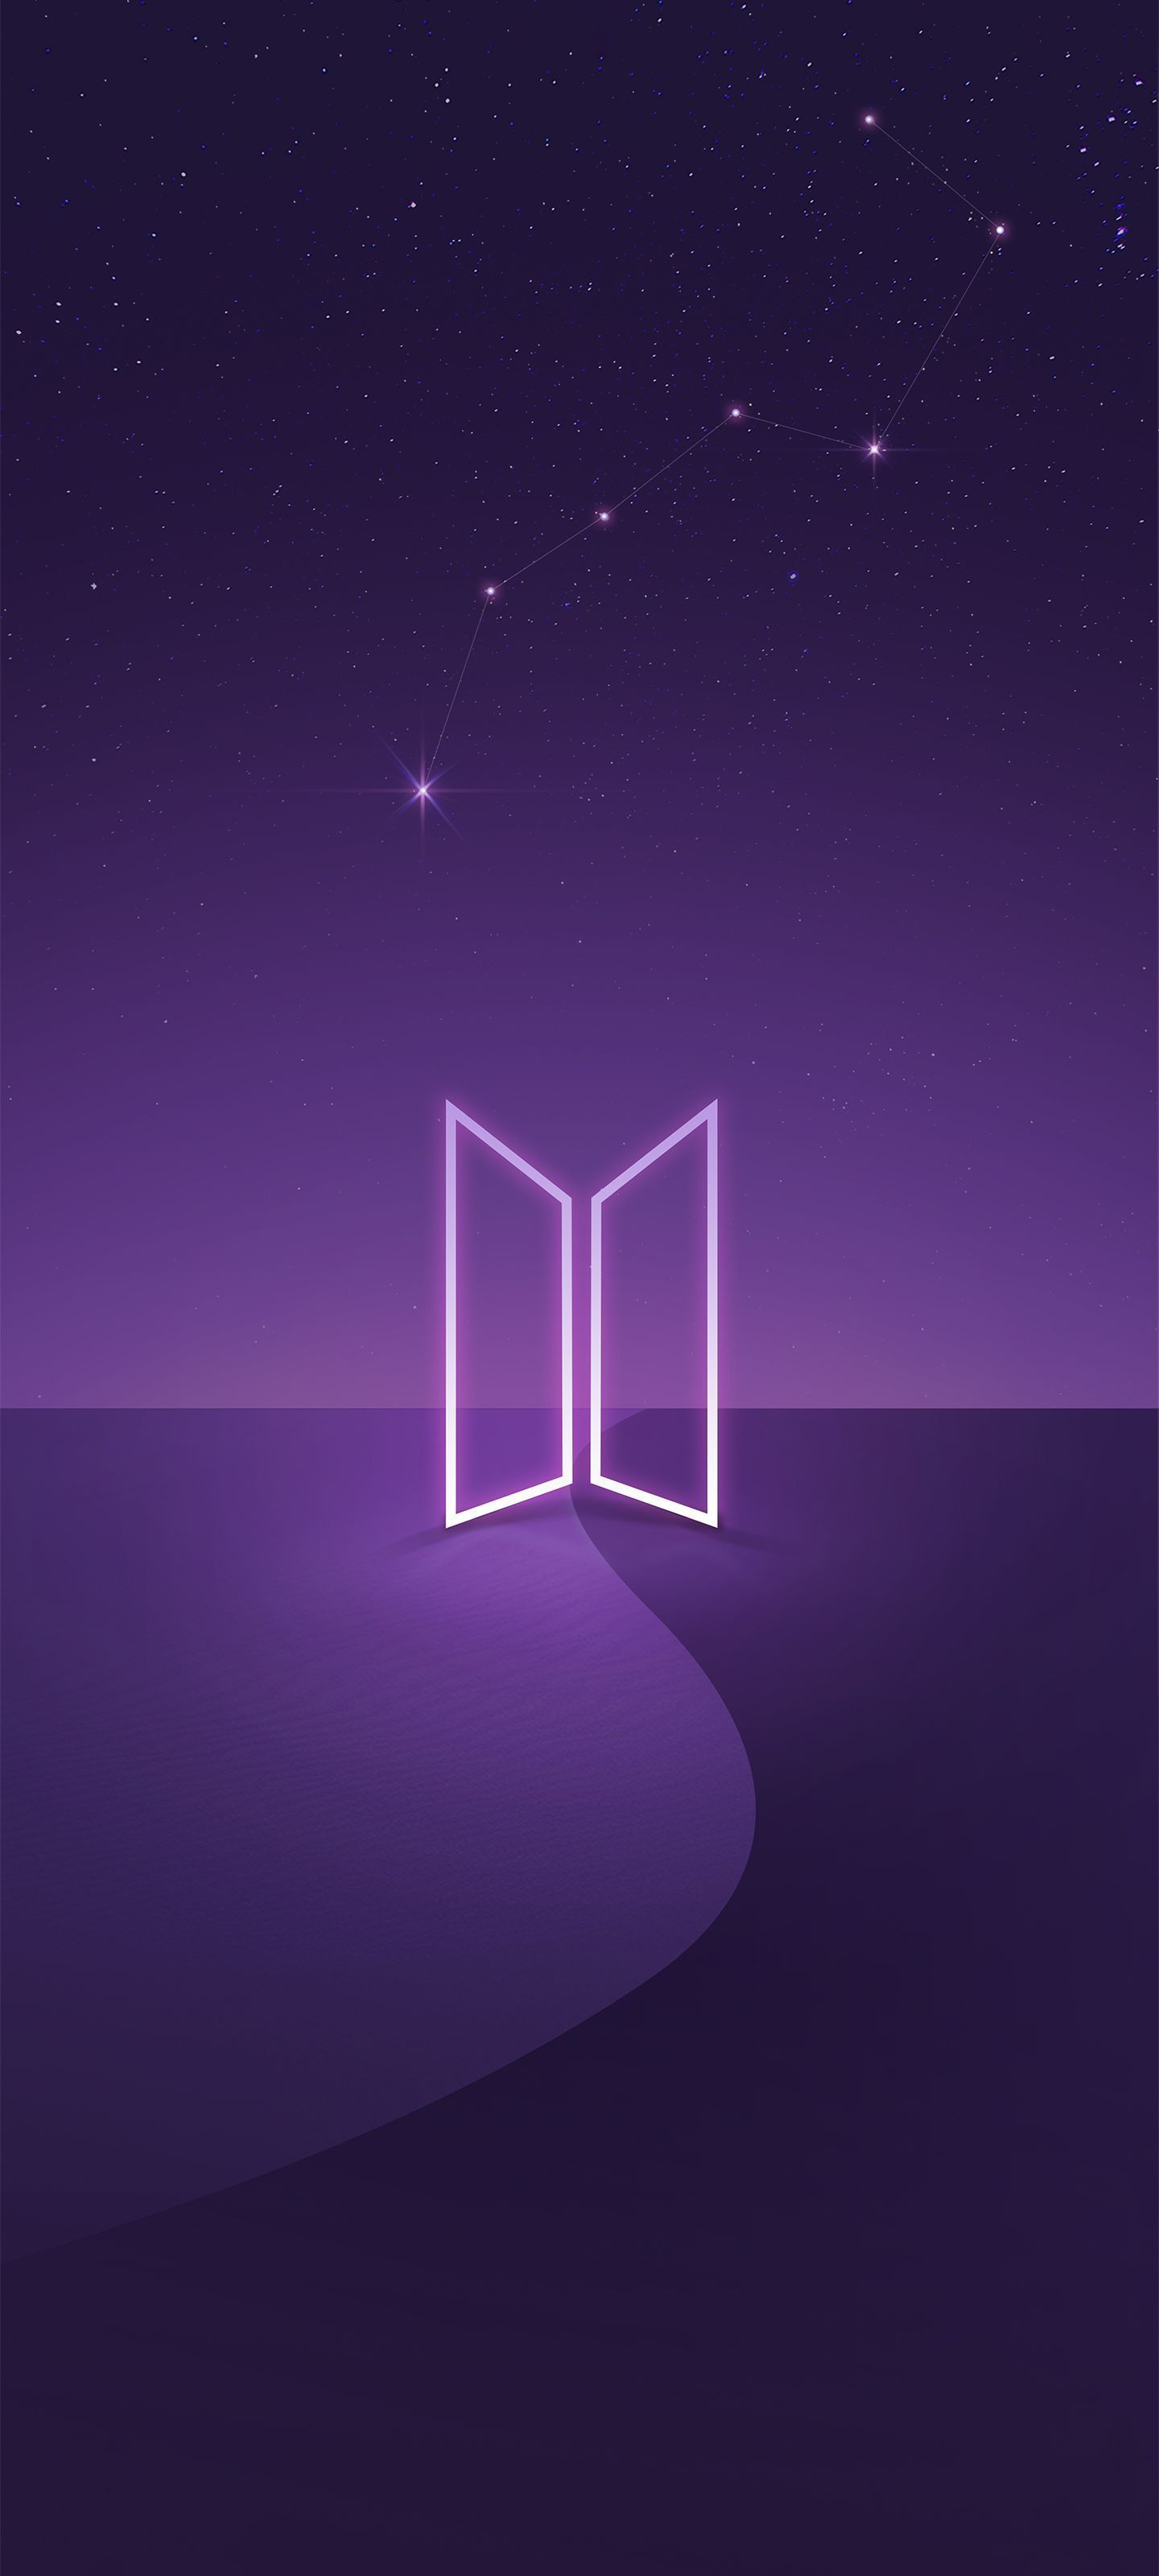 Pin By Jk On My Saves In 2020 Bts Wallpaper Galaxy Wallpaper Samsung Wallpaper